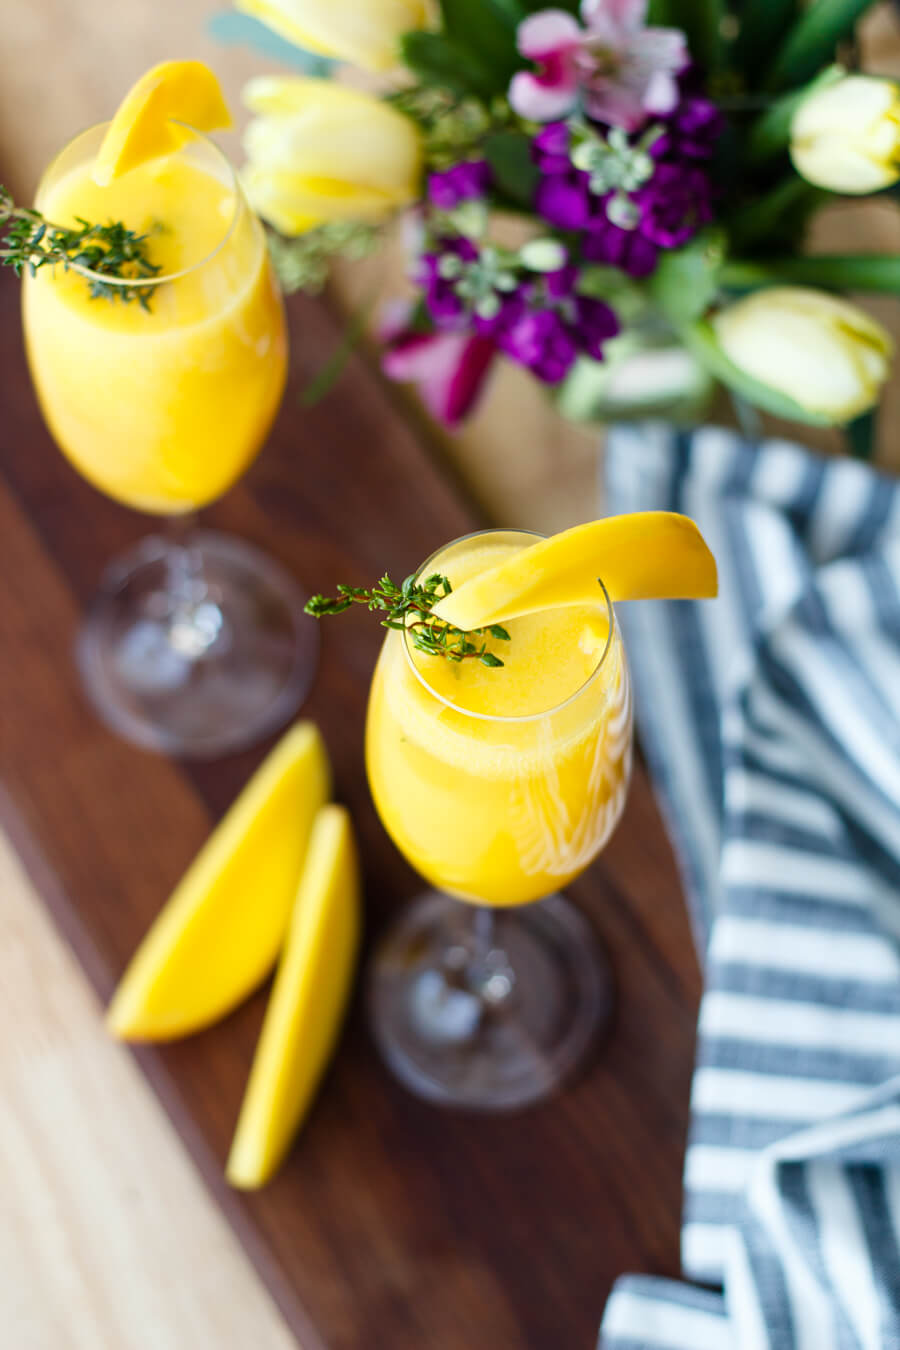 Pop open a bottle of champagne and celebrate the spring season with these mango thyme mimosas that are as beautiful as they are delicious! Recipe at www.designsofanykind.com